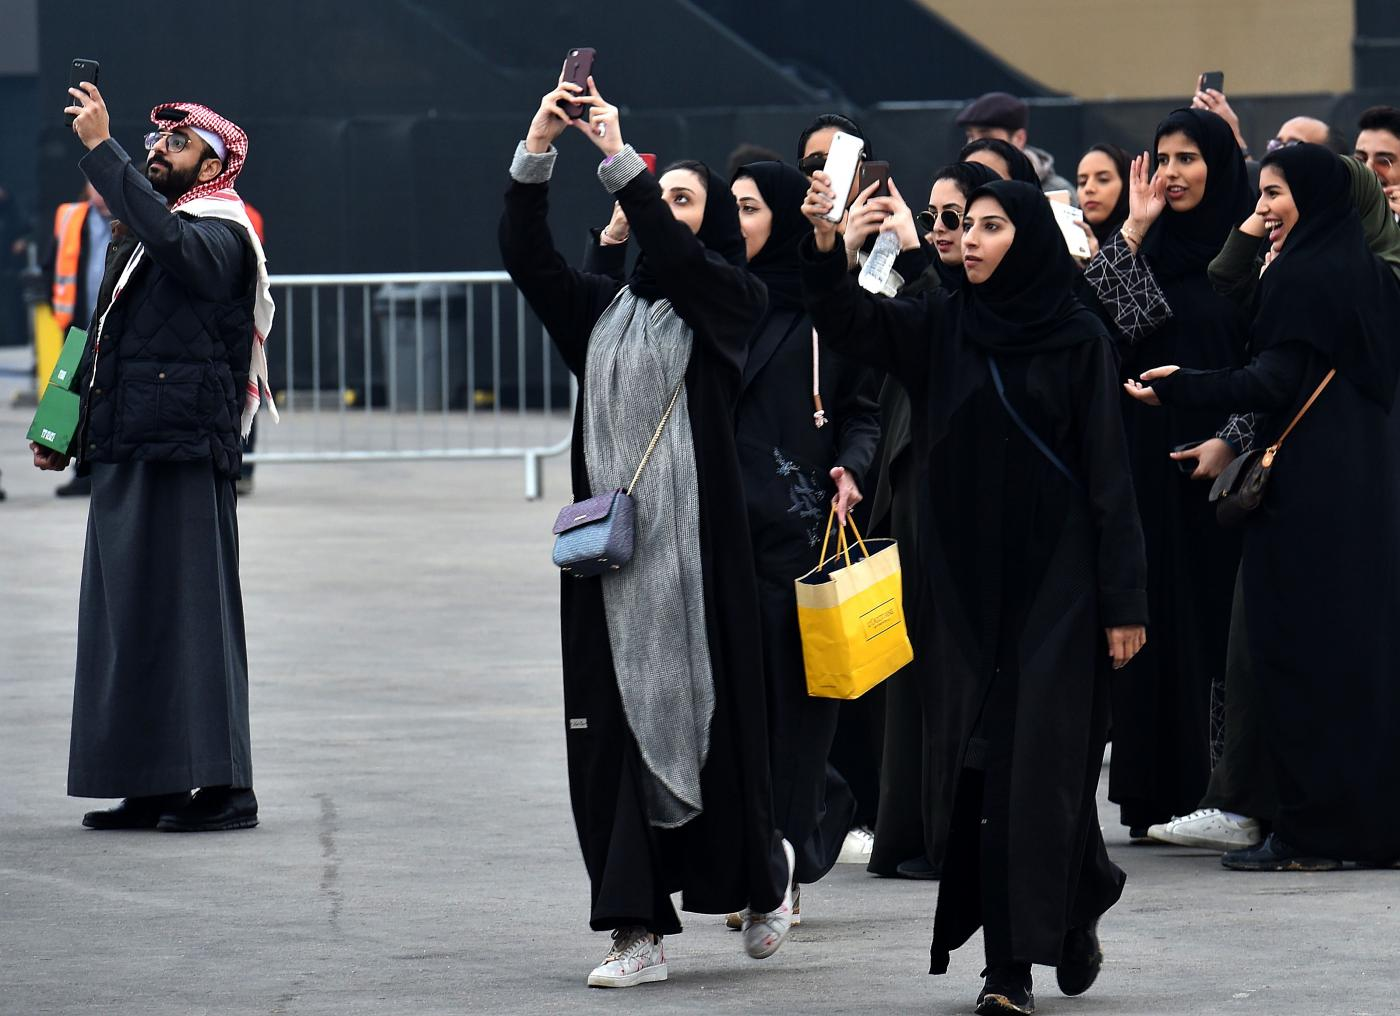 Saudi women take photographs with their mobile phones prior to Saudia Ad Diriyah E-Prix Formula E Championship in Riyadh, on 15 December, 2018 (AFP)